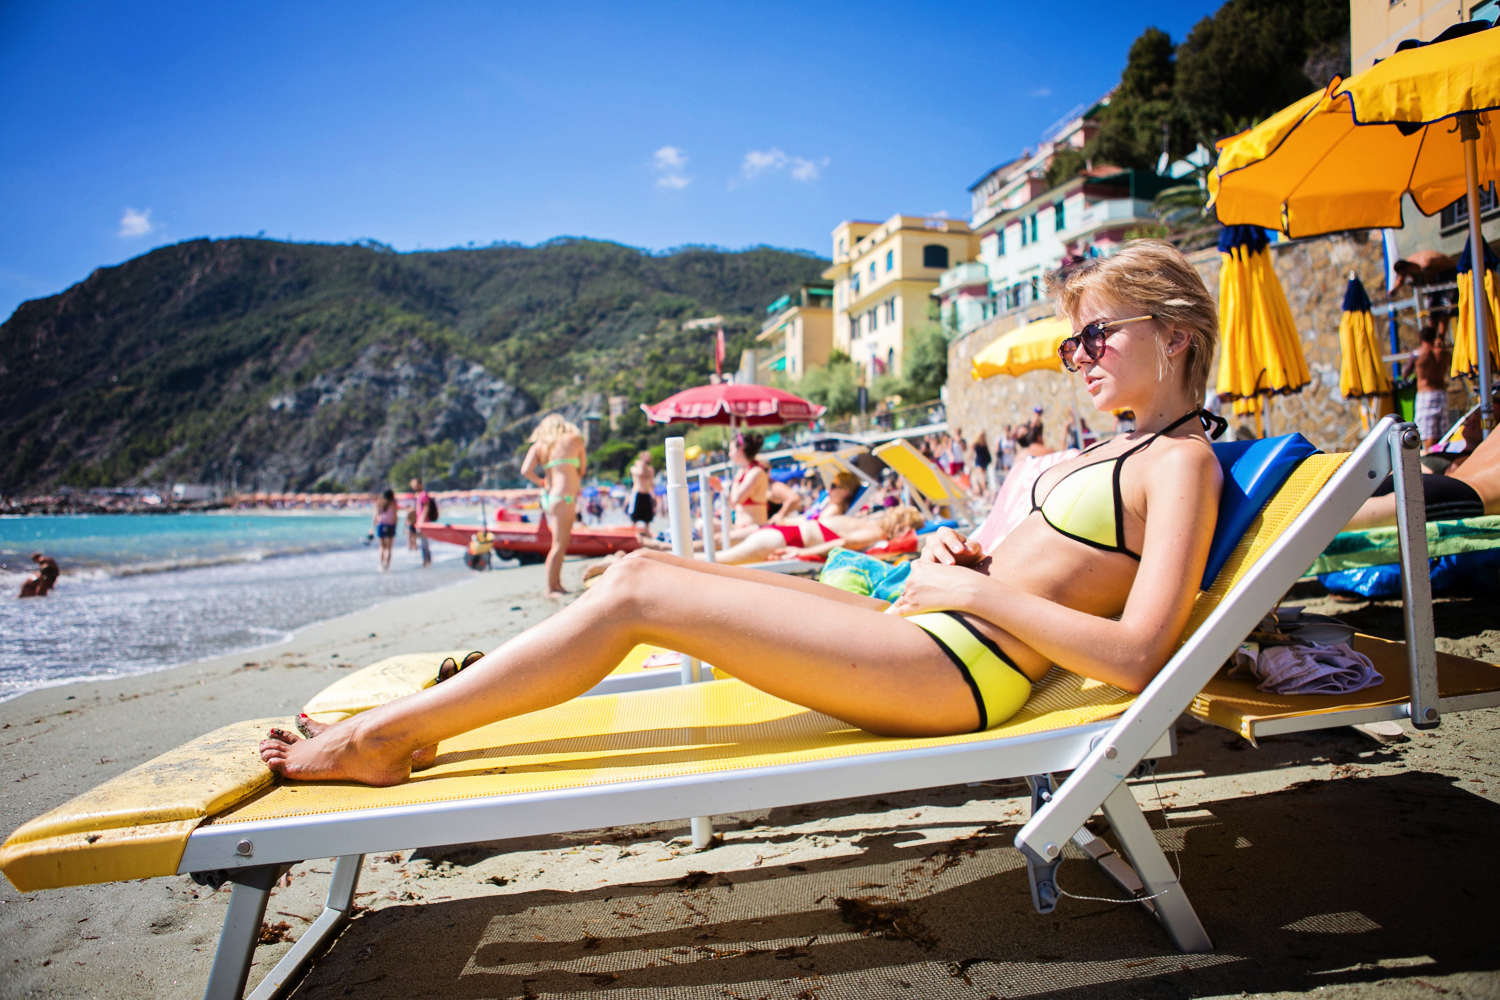 darya kamalova thecablook com fashion blog street style triangl swimwear bikini gogo philip necklace asos sweater leather jacket baldinini be and d heel sneakers monterosso al mare cinqueterre view freinds friendship marina chistova-7 копия